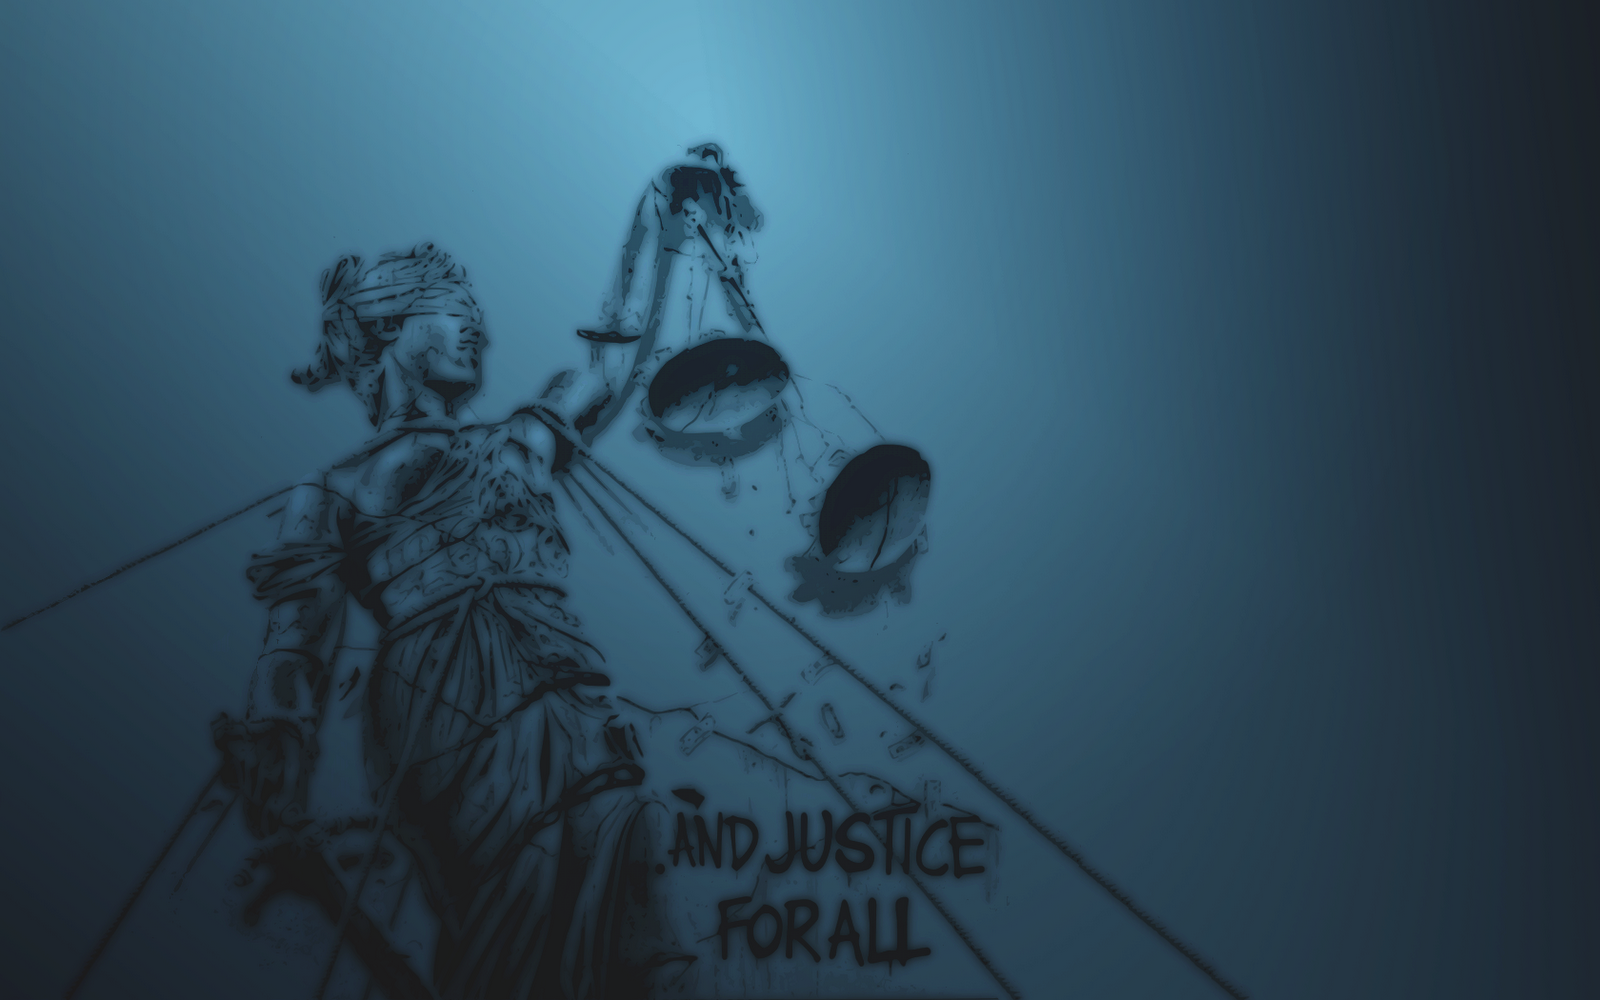 and gimp and the and justice for all cover 1680x1050 1600x1000